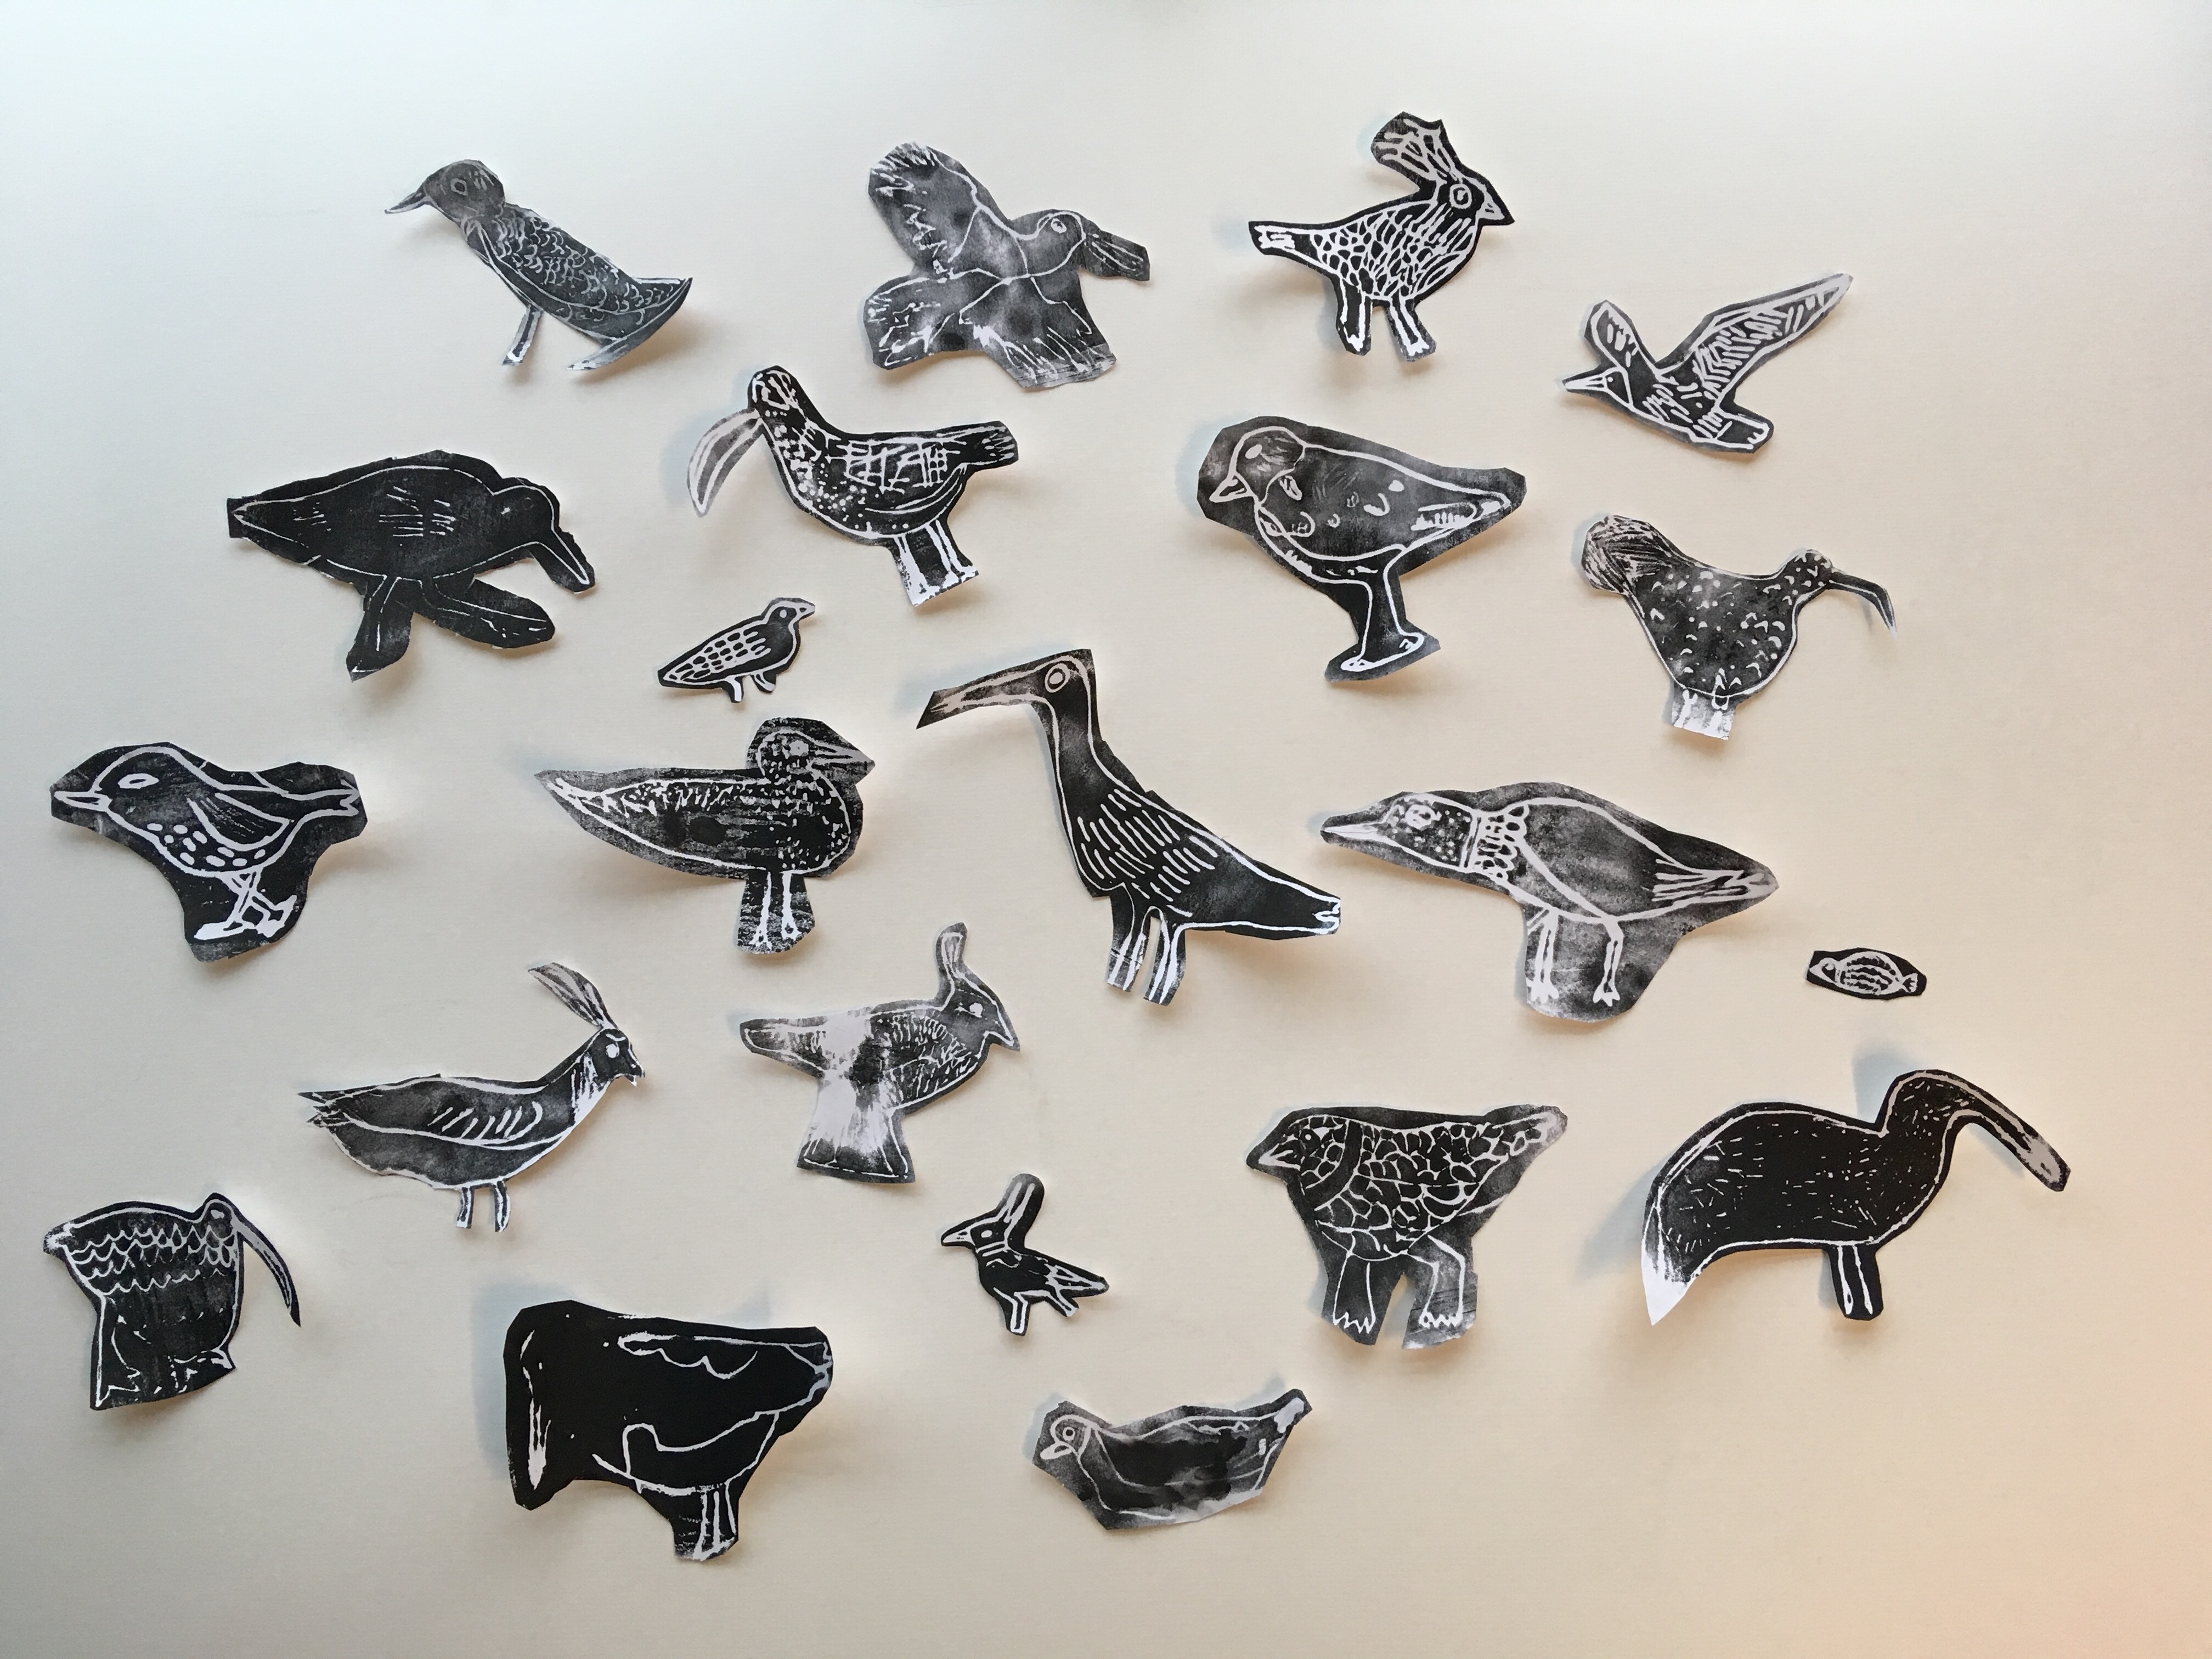 Birds from Morecambe Bay: prints made by a class of Year 5s using conductive ink.